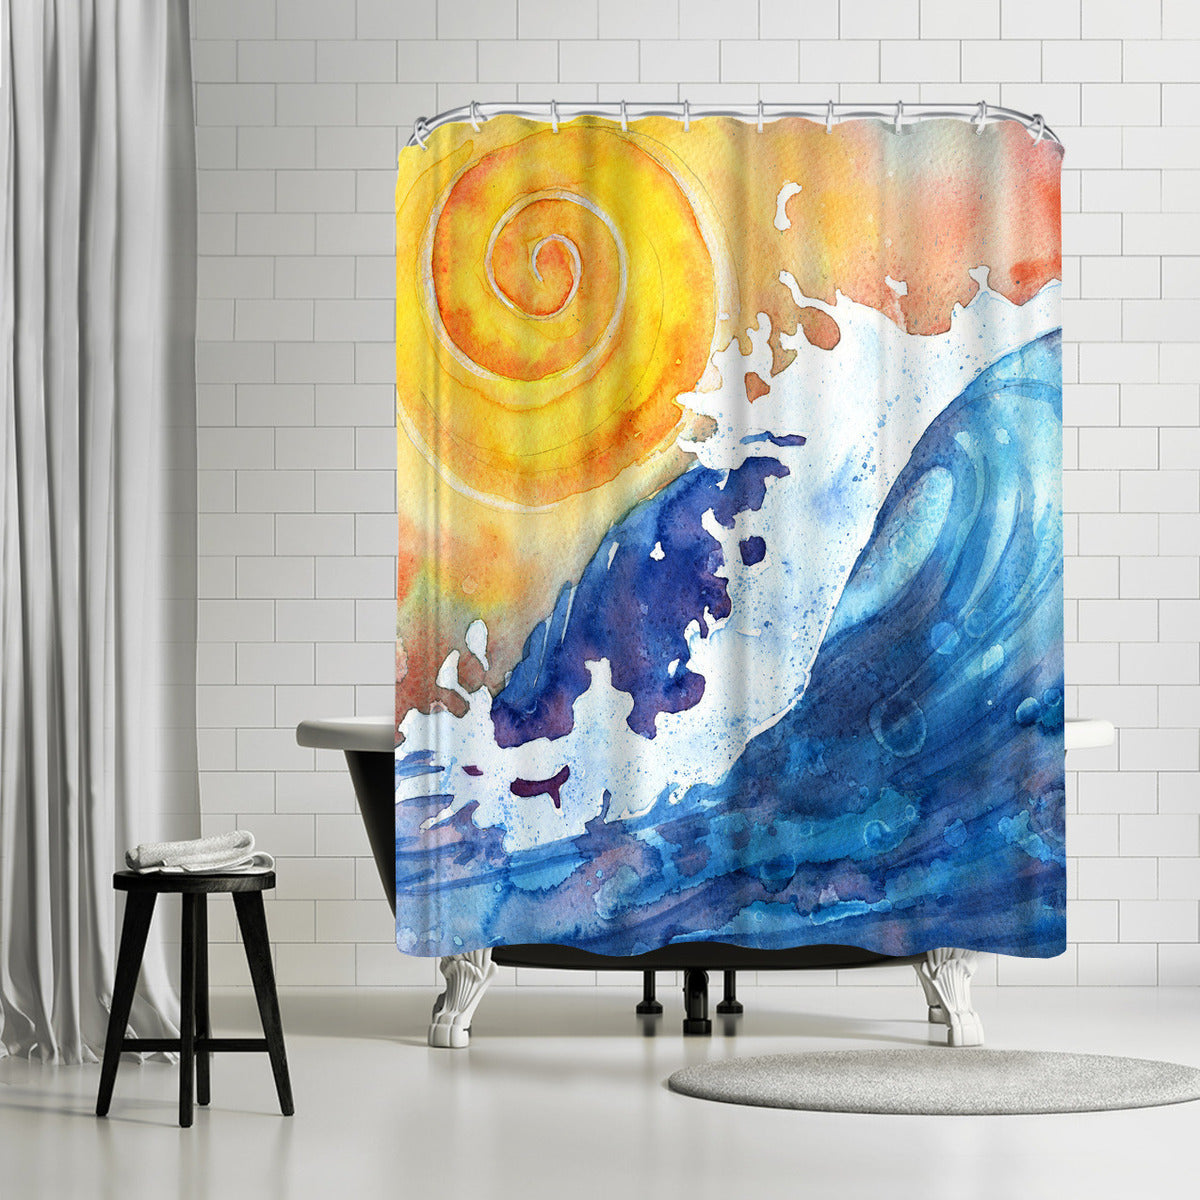 Facing East by Sam Nagel Shower Curtain - Shower Curtain - Americanflat